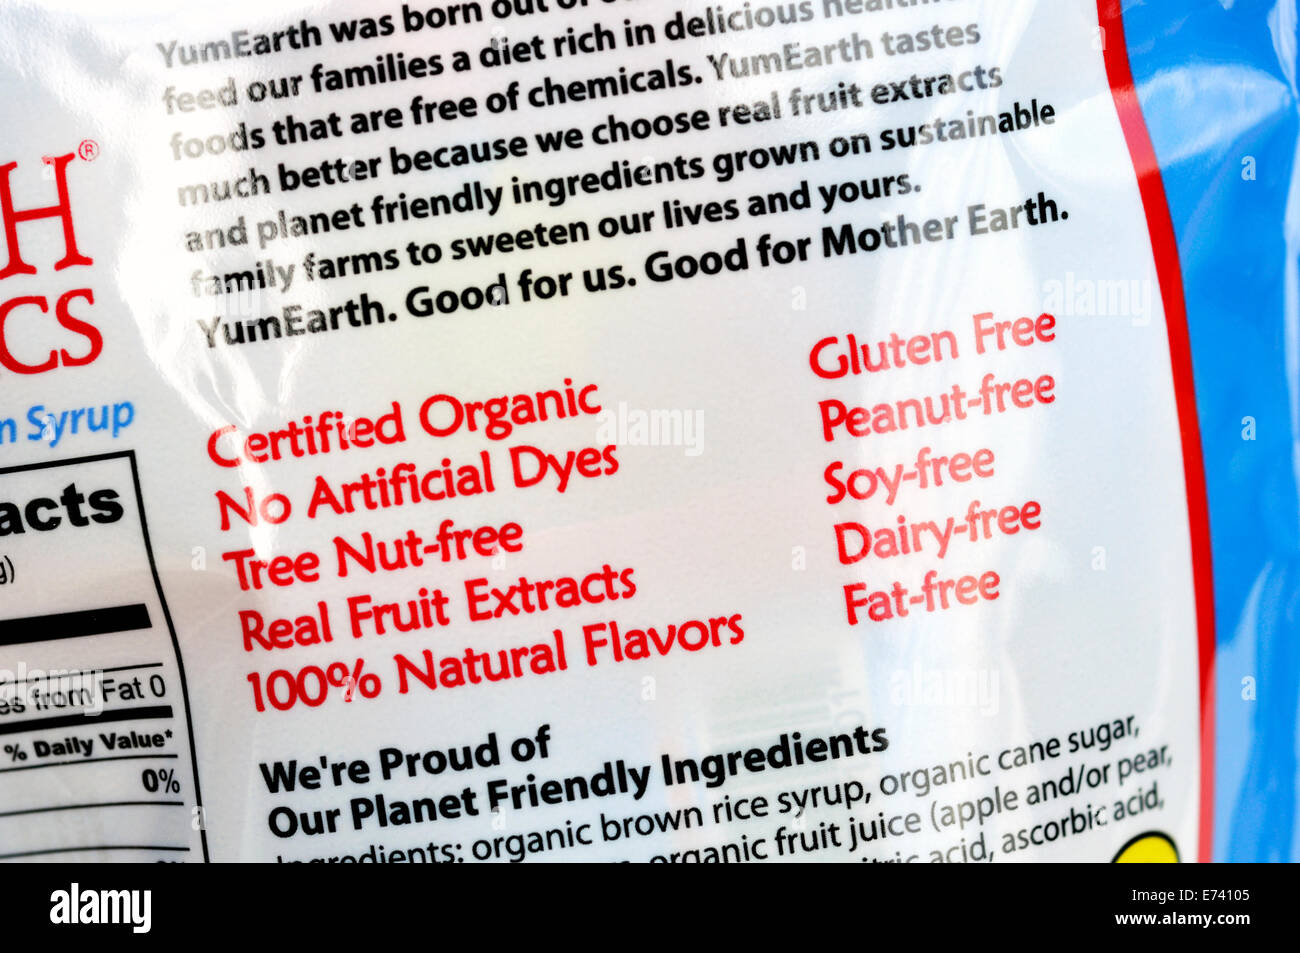 Label on candy package: certified organic, no artificial dyes, gluten free, etc. Stock Photo